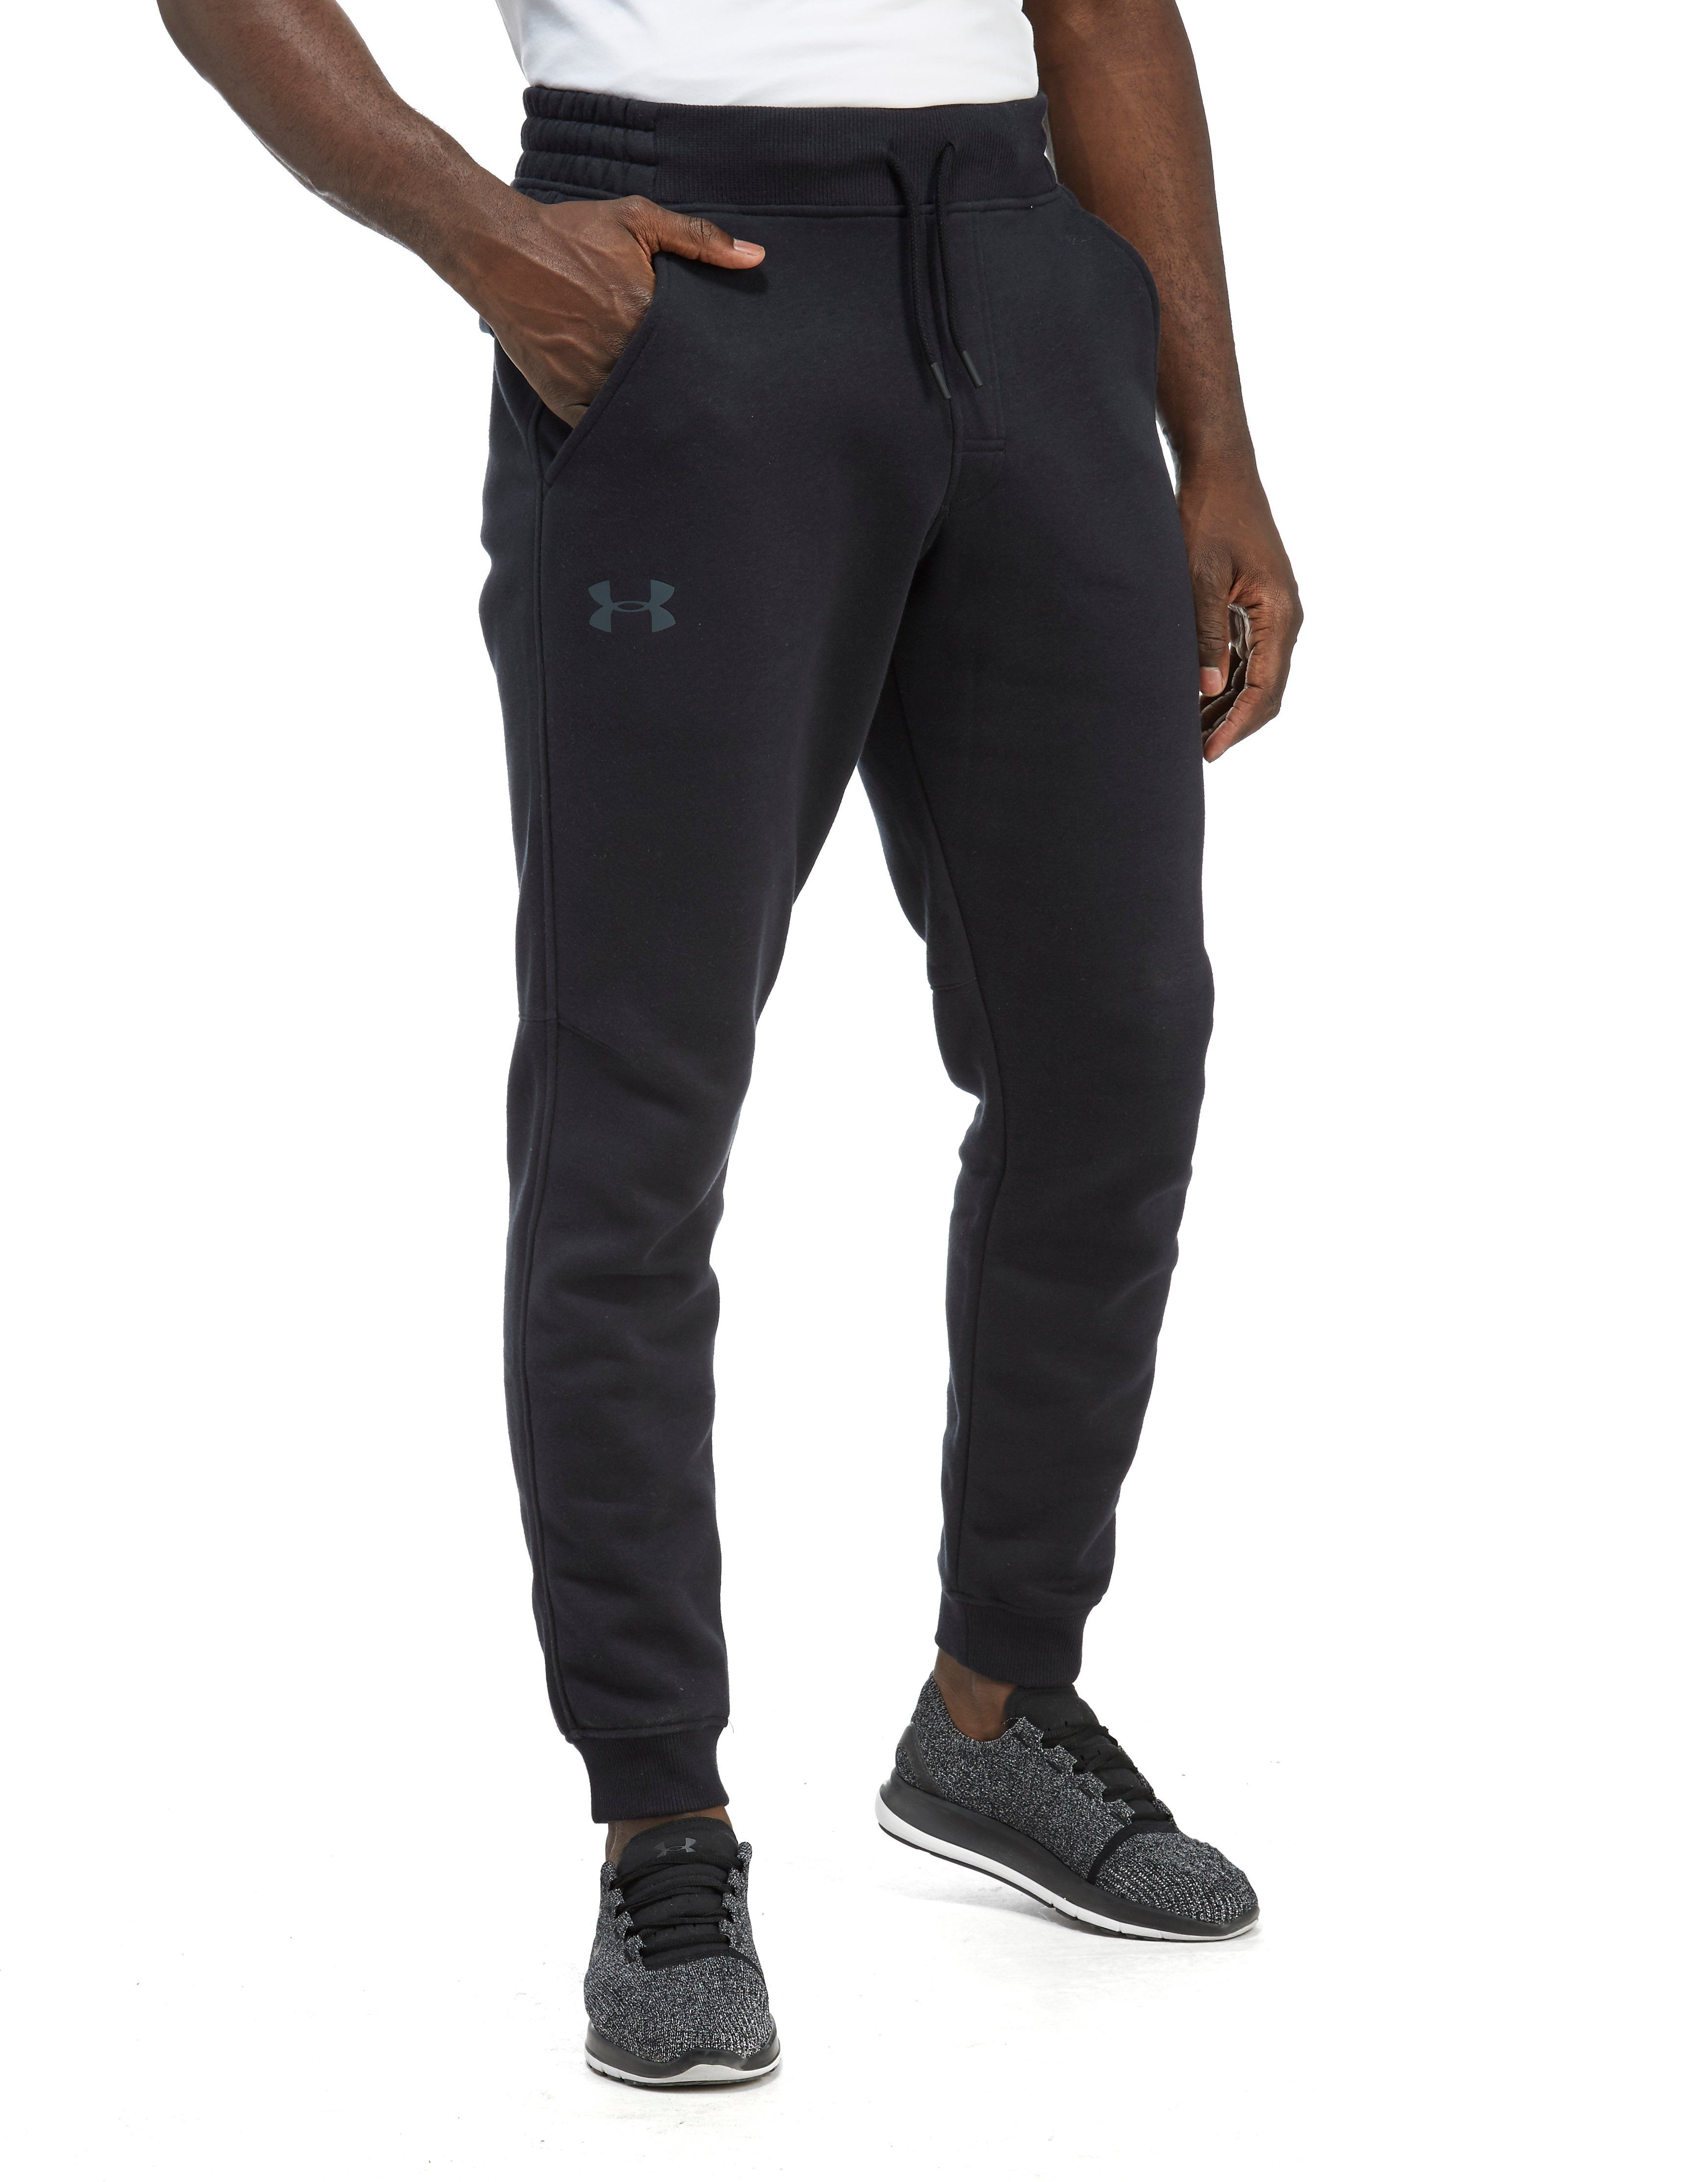 8b39ef8f32810 Under Armour Storm Joggers | JD Sports best - gemeinschaftspraxis ...